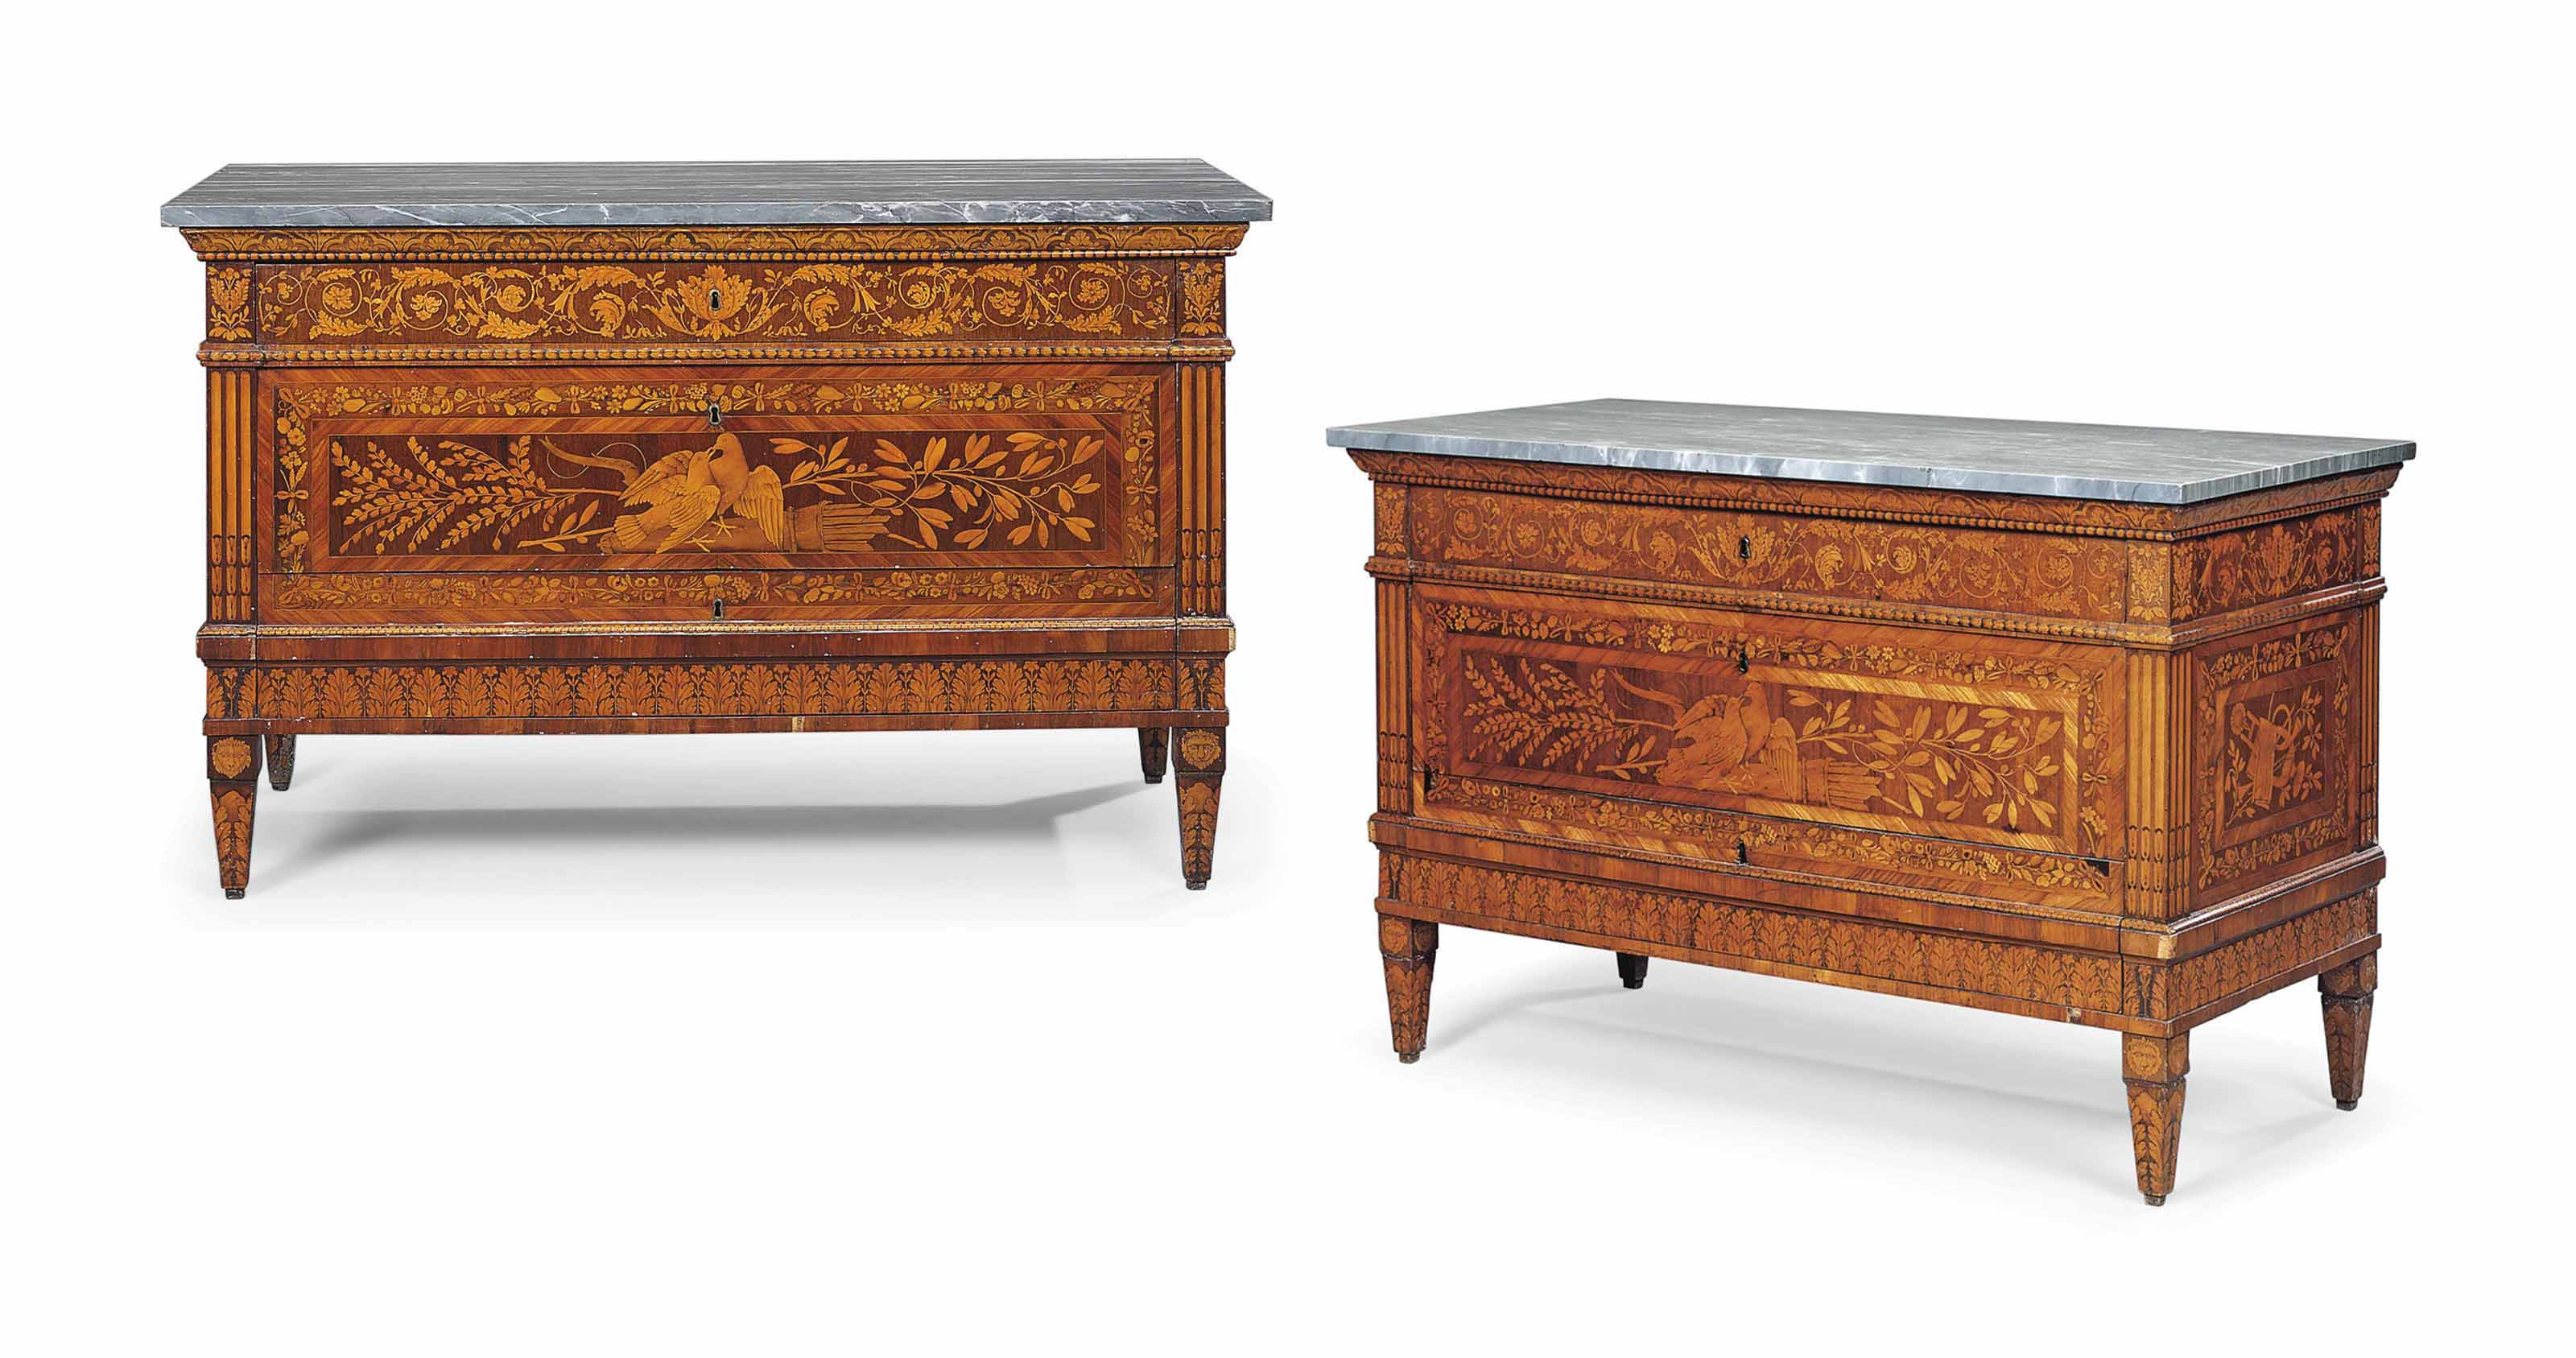 A PAIR OF NORTH ITALIAN KINGWOOD, AMARANTH, TULIPWOOD AND FRUITWOOD MARQUETRY COMMODES